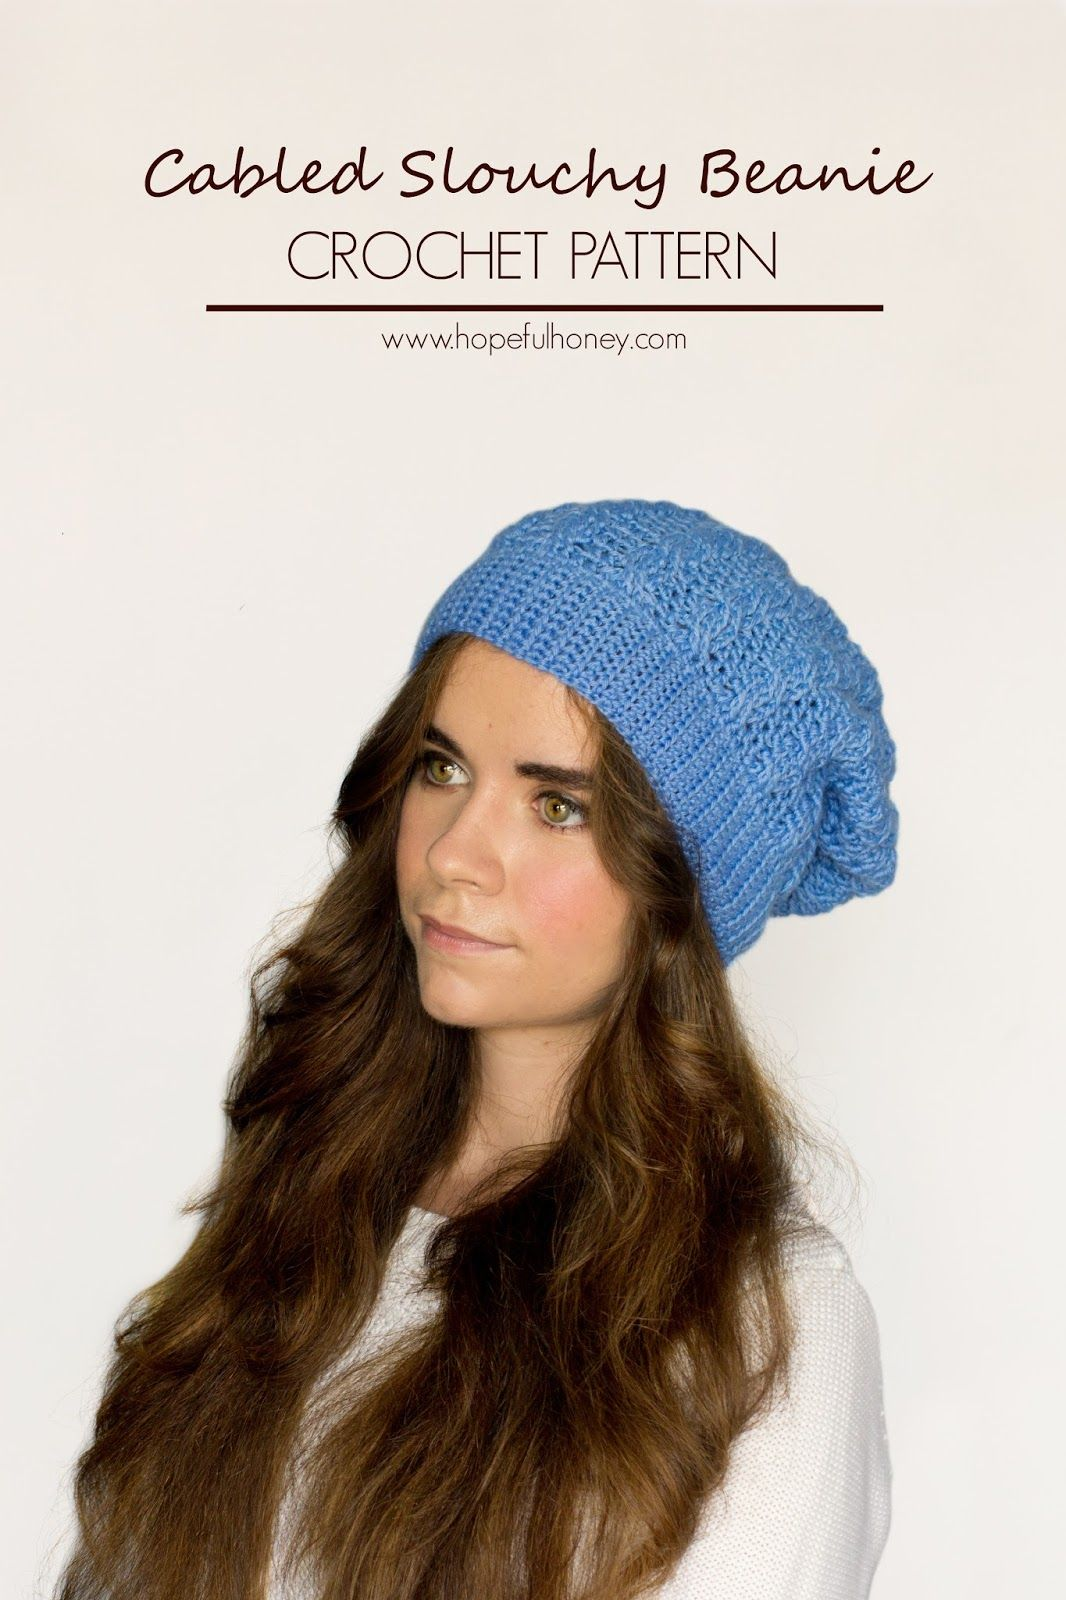 Cabled Slouchy Beanie Crochet Pattern | Free crochet, Cable and Crochet